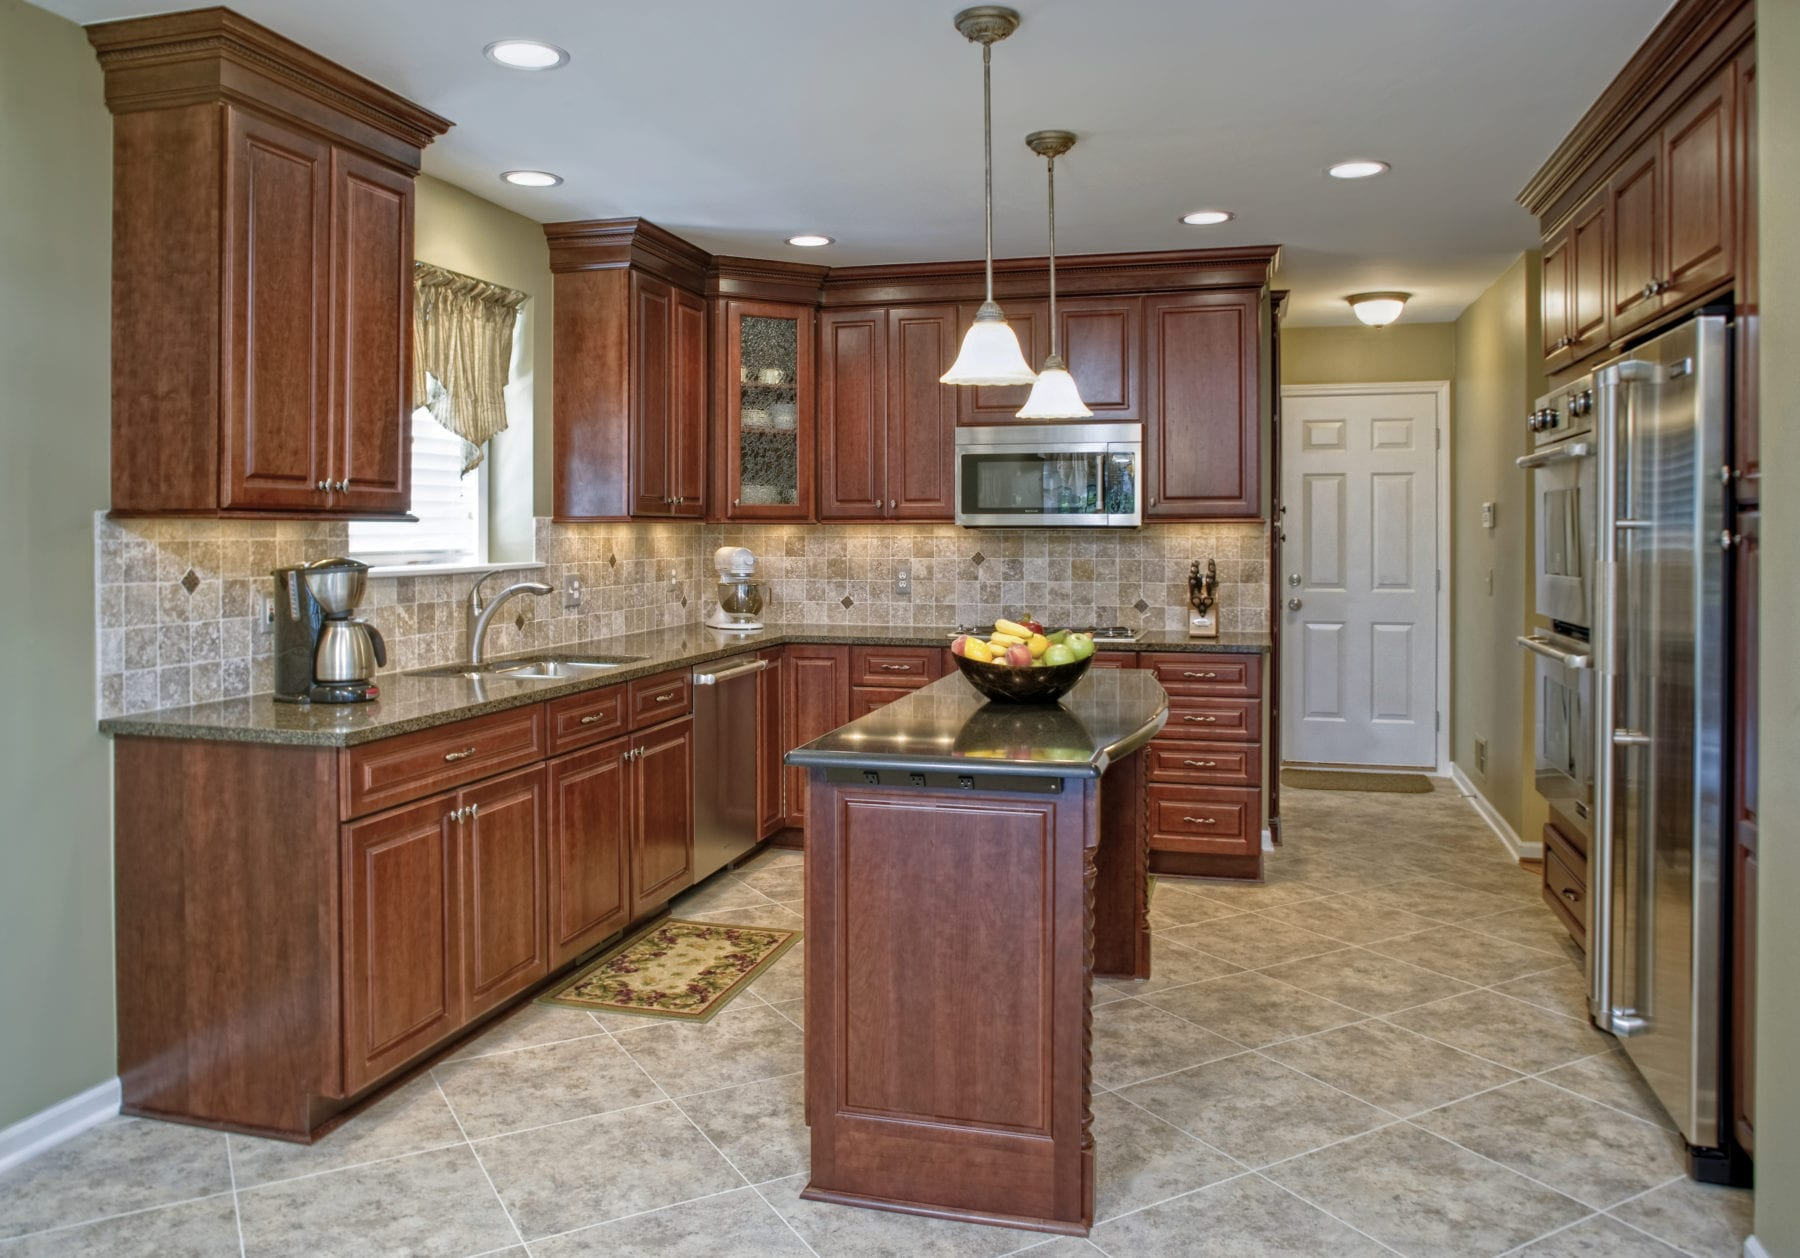 Columbia md kitchen renovation and remodeling trademark for Flooring contractor columbia md